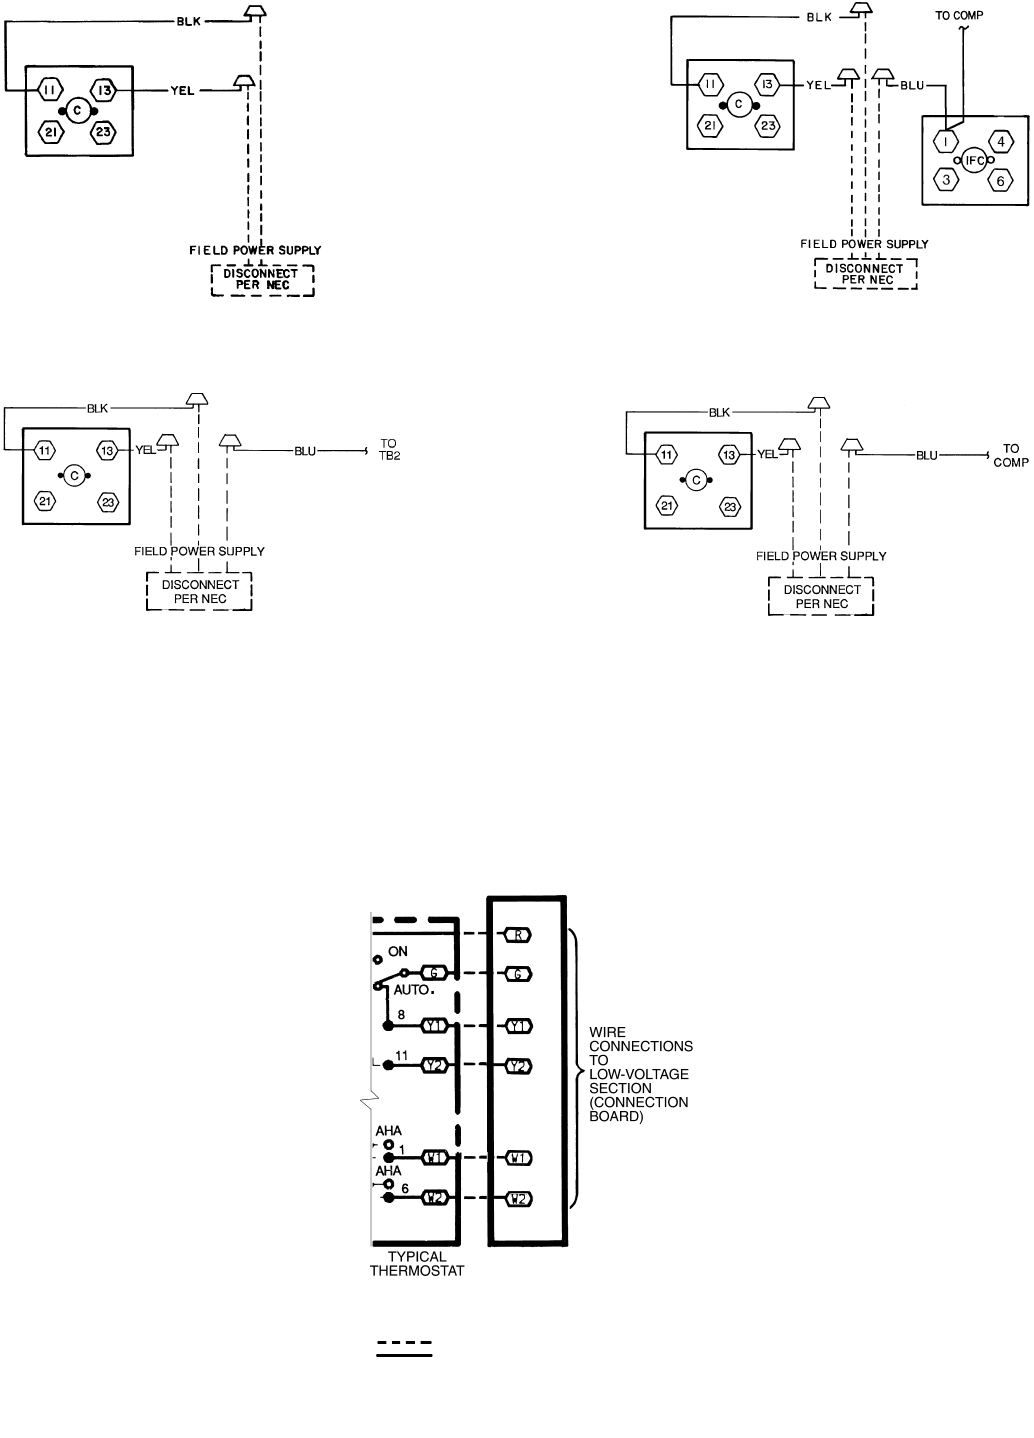 Carrier 48Tjd Users Manual